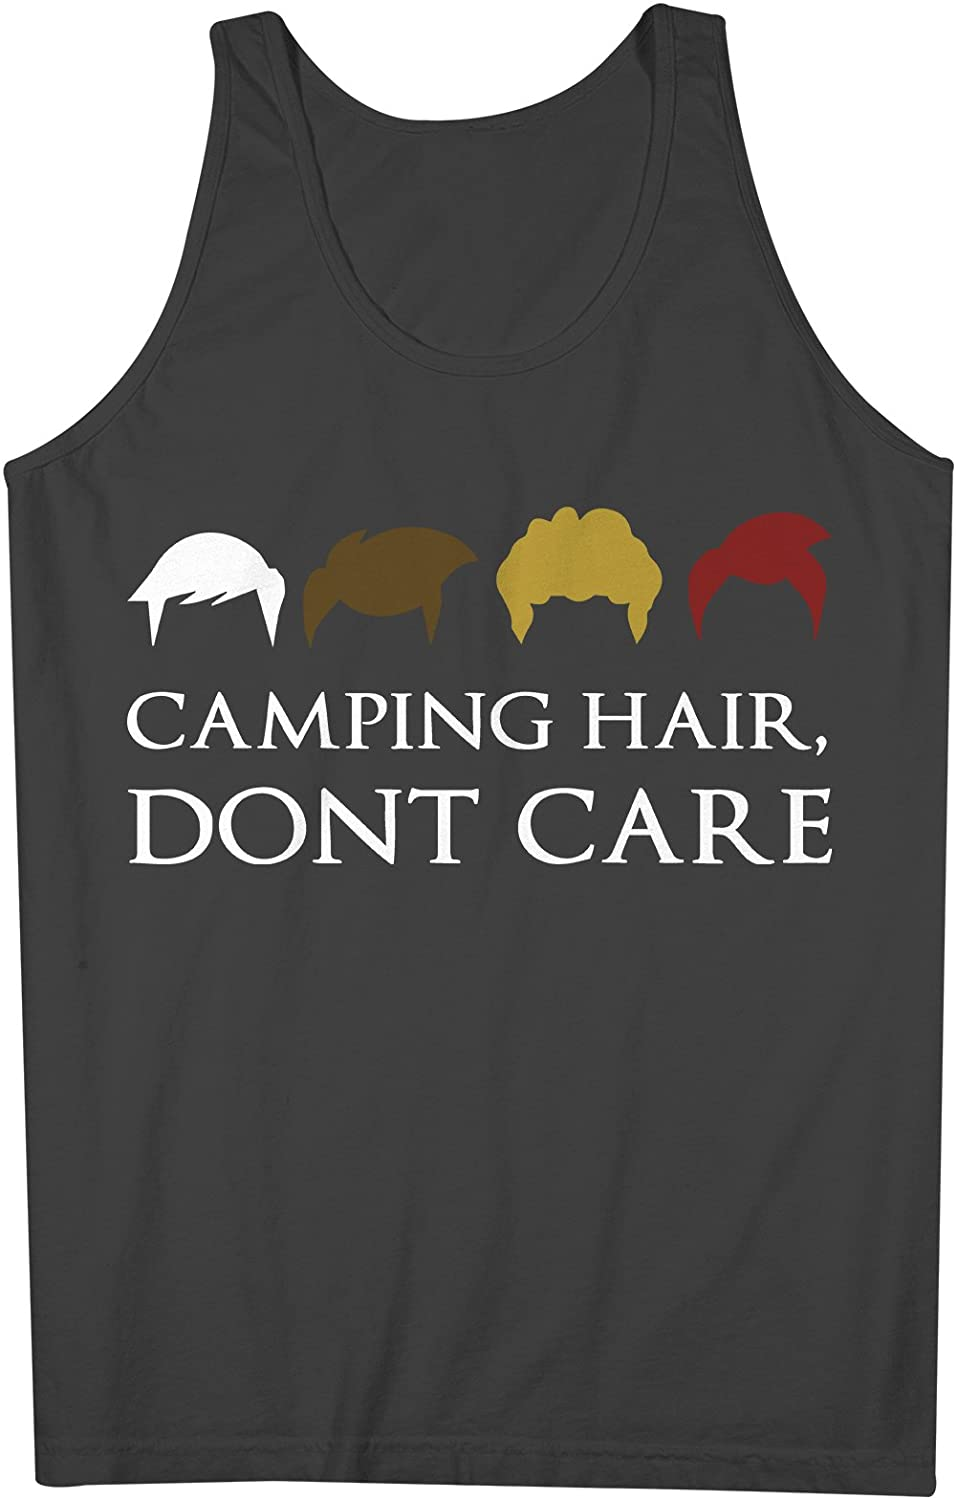 Camping Hair Don't Care おかしいです Traveling 男性用 Tank Top Sleeveless Shirt